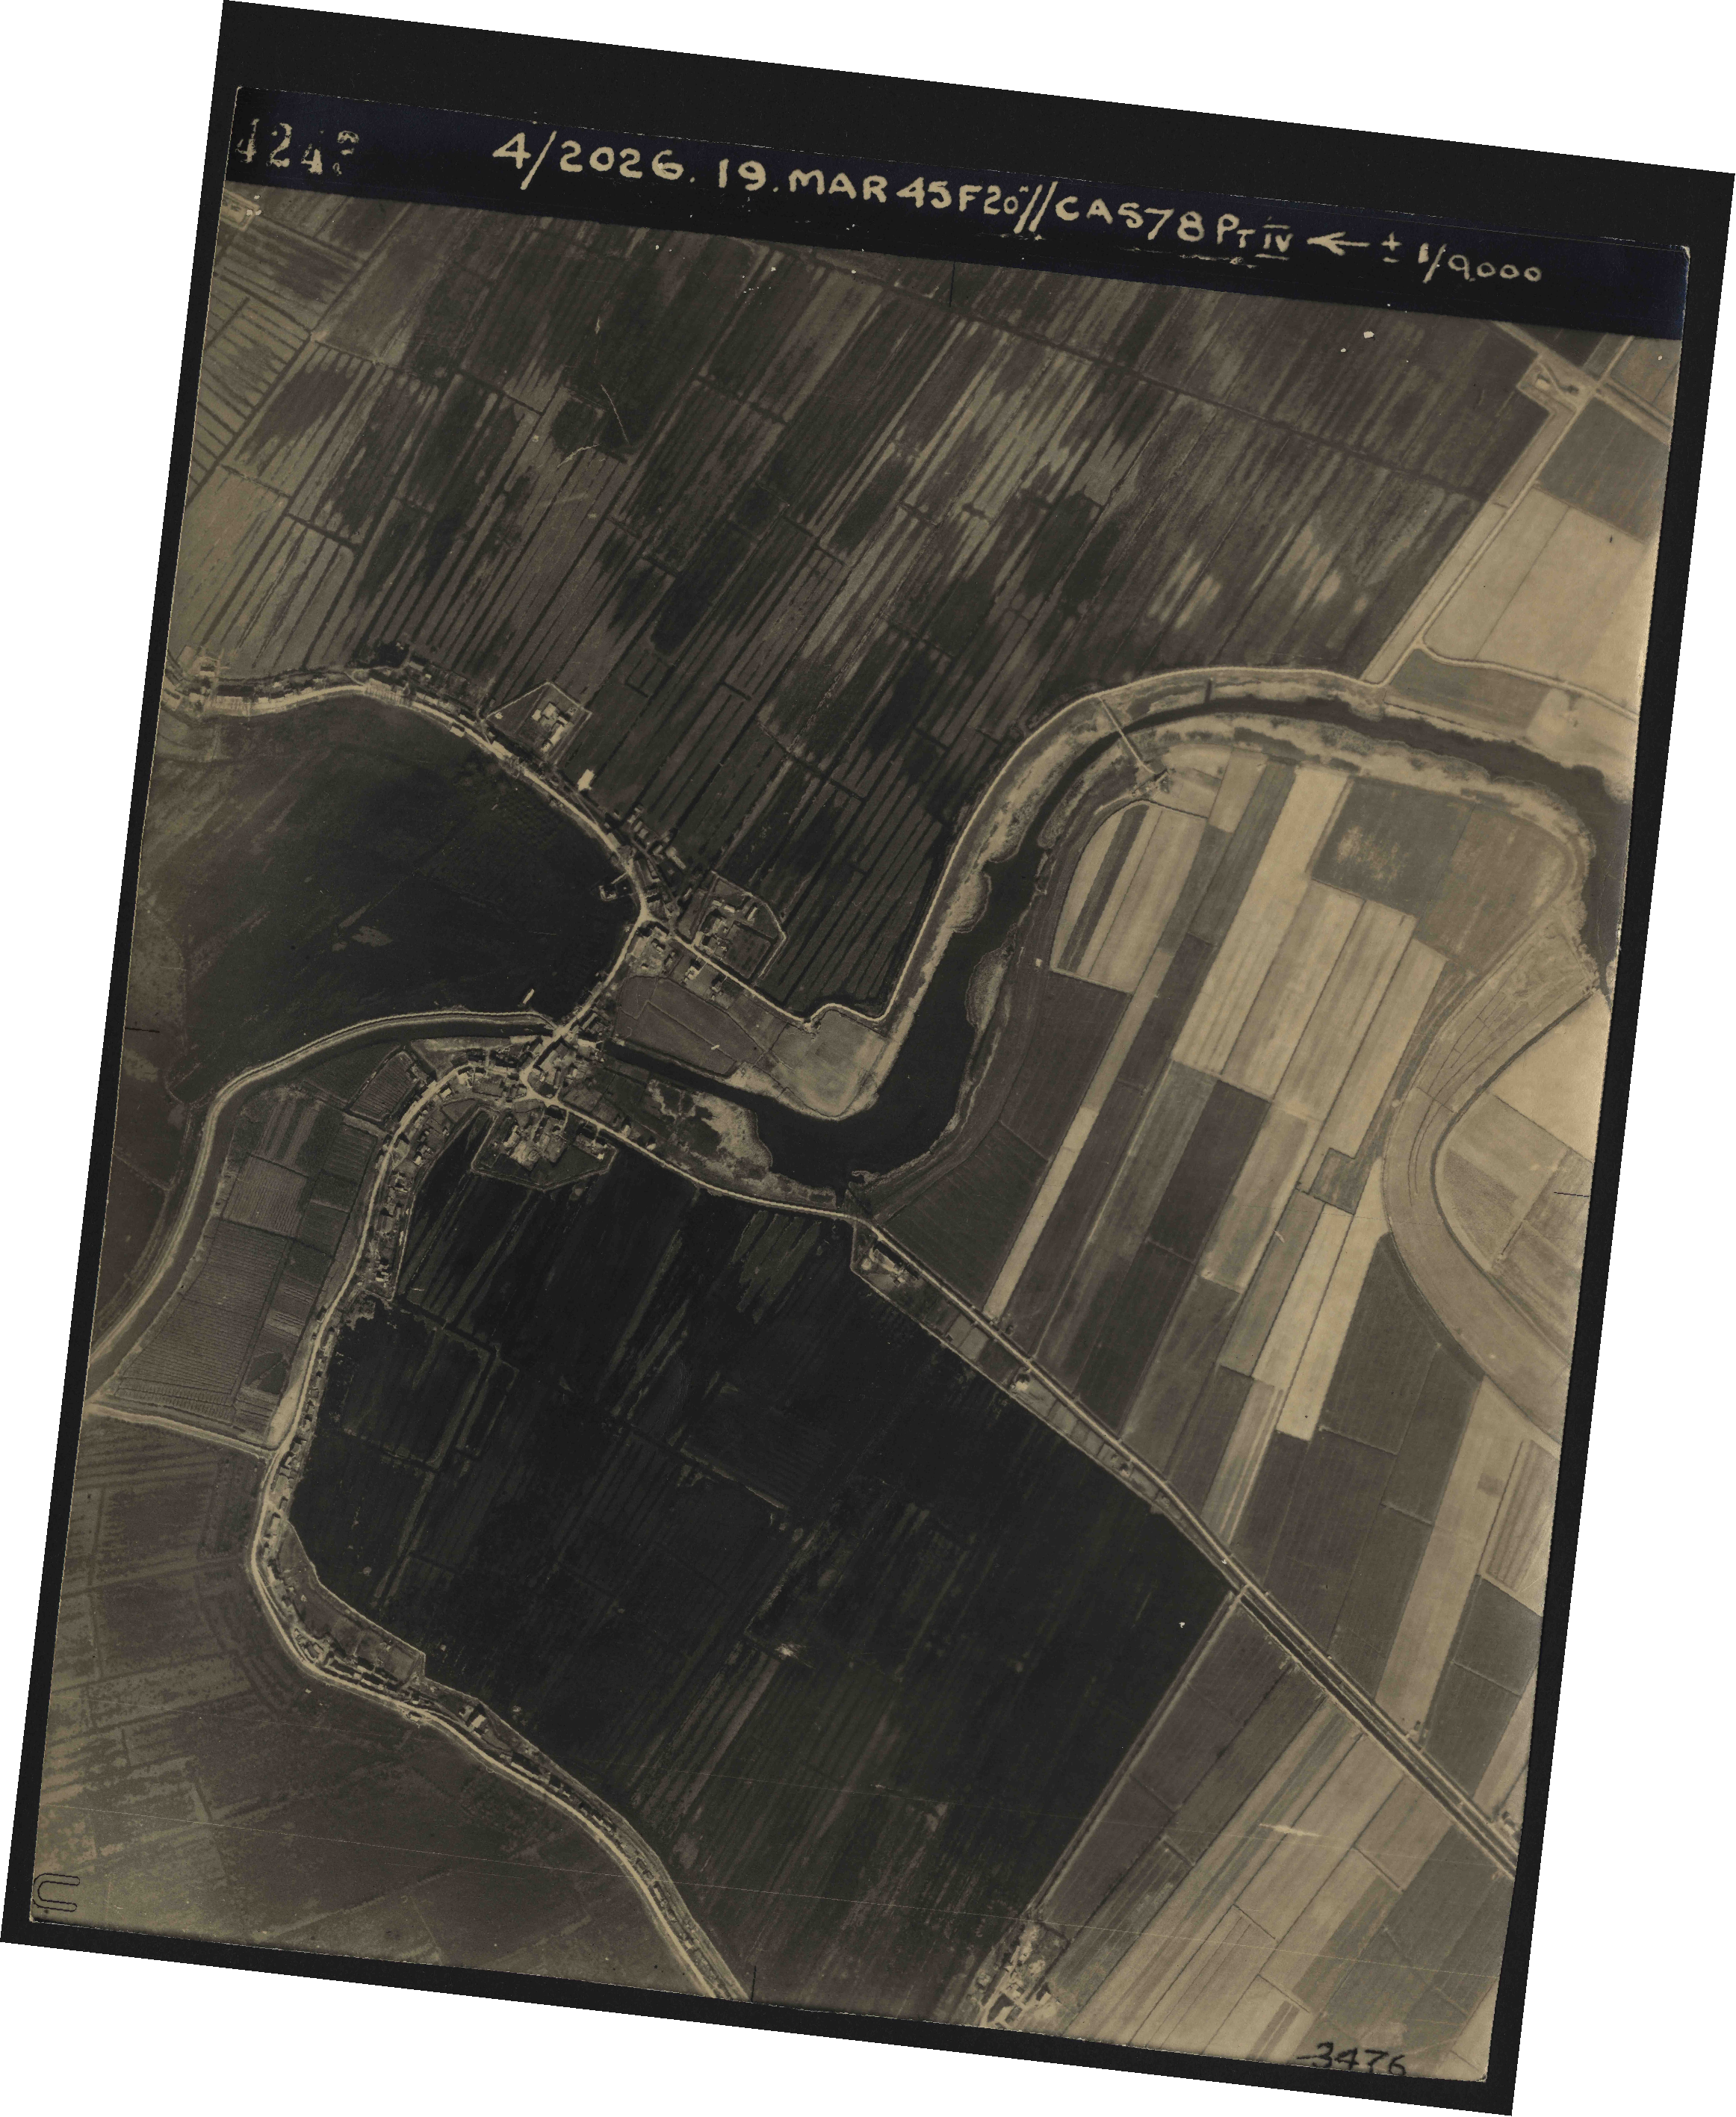 Collection RAF aerial photos 1940-1945 - flight 012, run 06, photo 4243